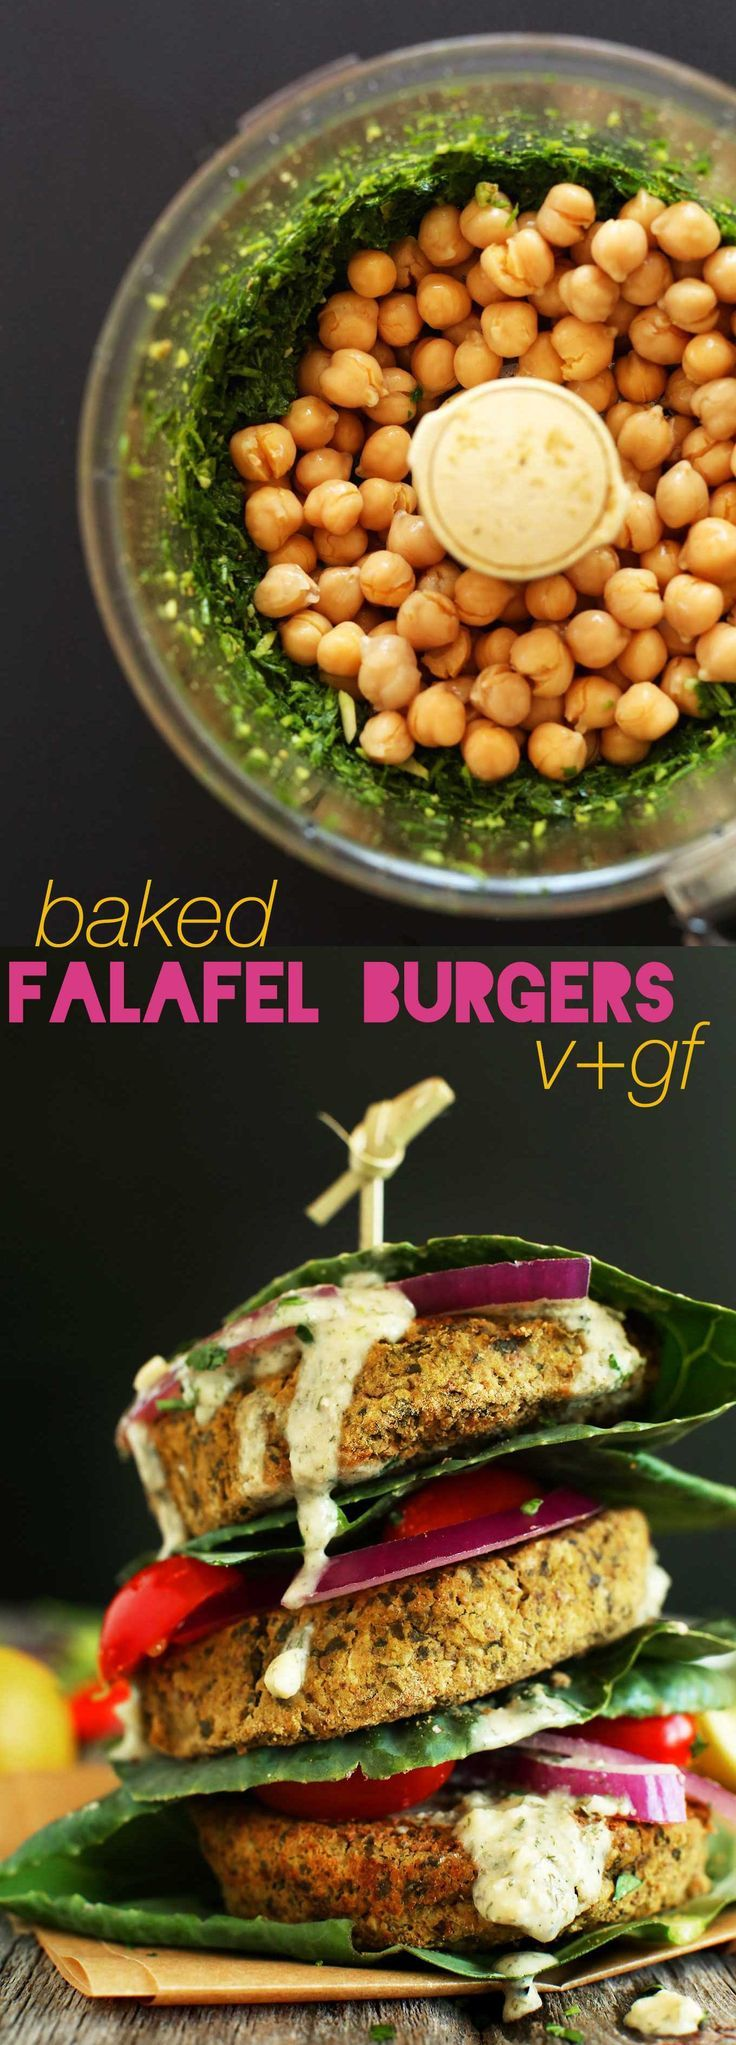 7 ingredient falafel burgers with 10 grams of protein and 5 grams fiber EACH! SO healthy, #vegan and #glutenfree (Vegetable Sandwich Recipes)